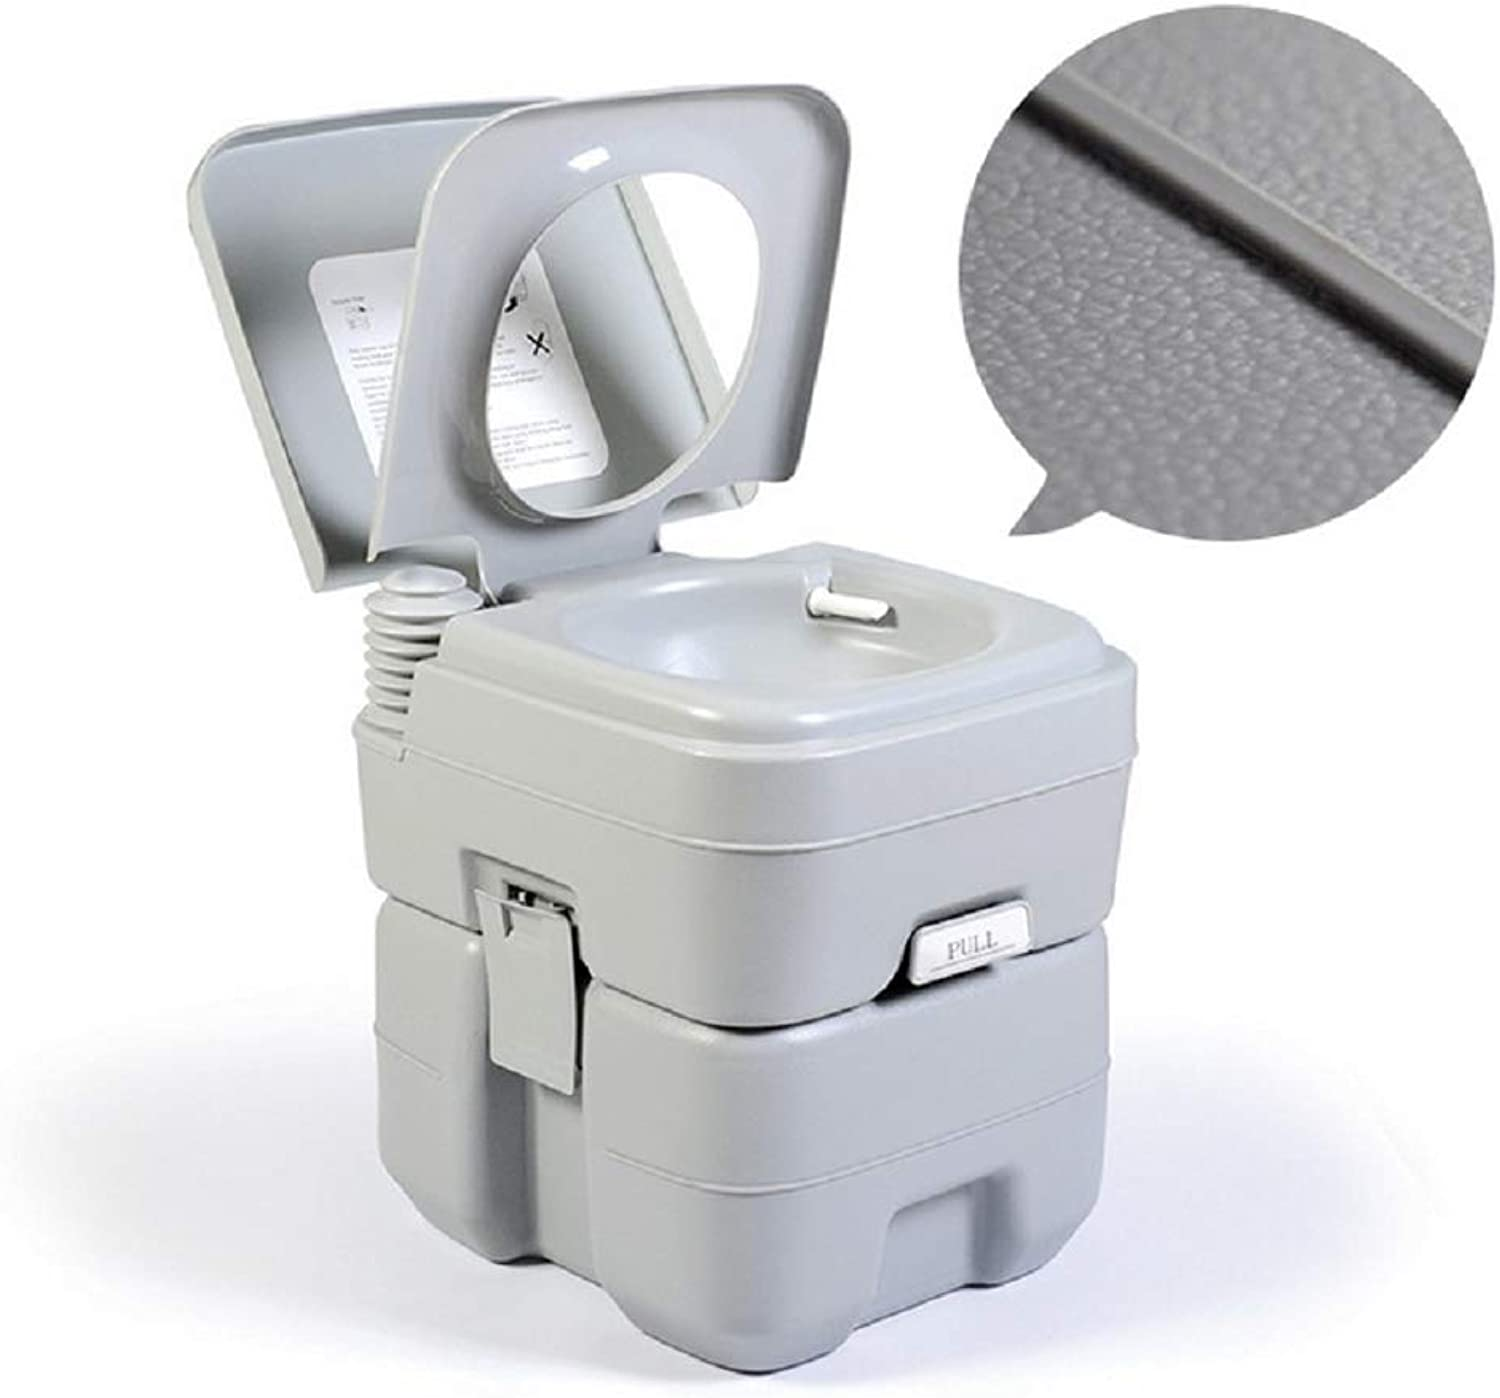 SHKY Portable Travel Toilet Designed For Camping, RV, Boating And Other Recreational Activities